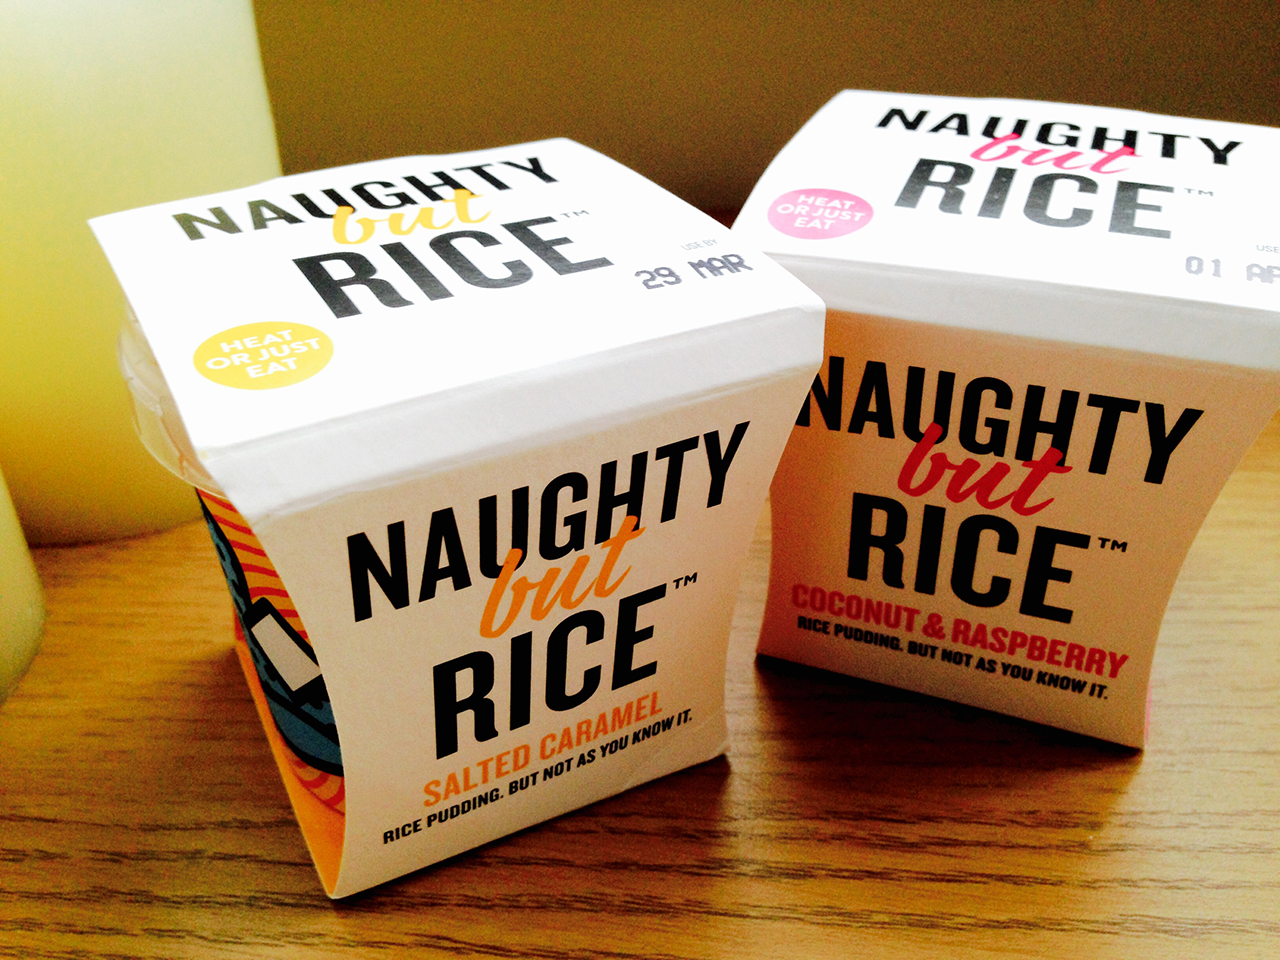 Naughty but Rice